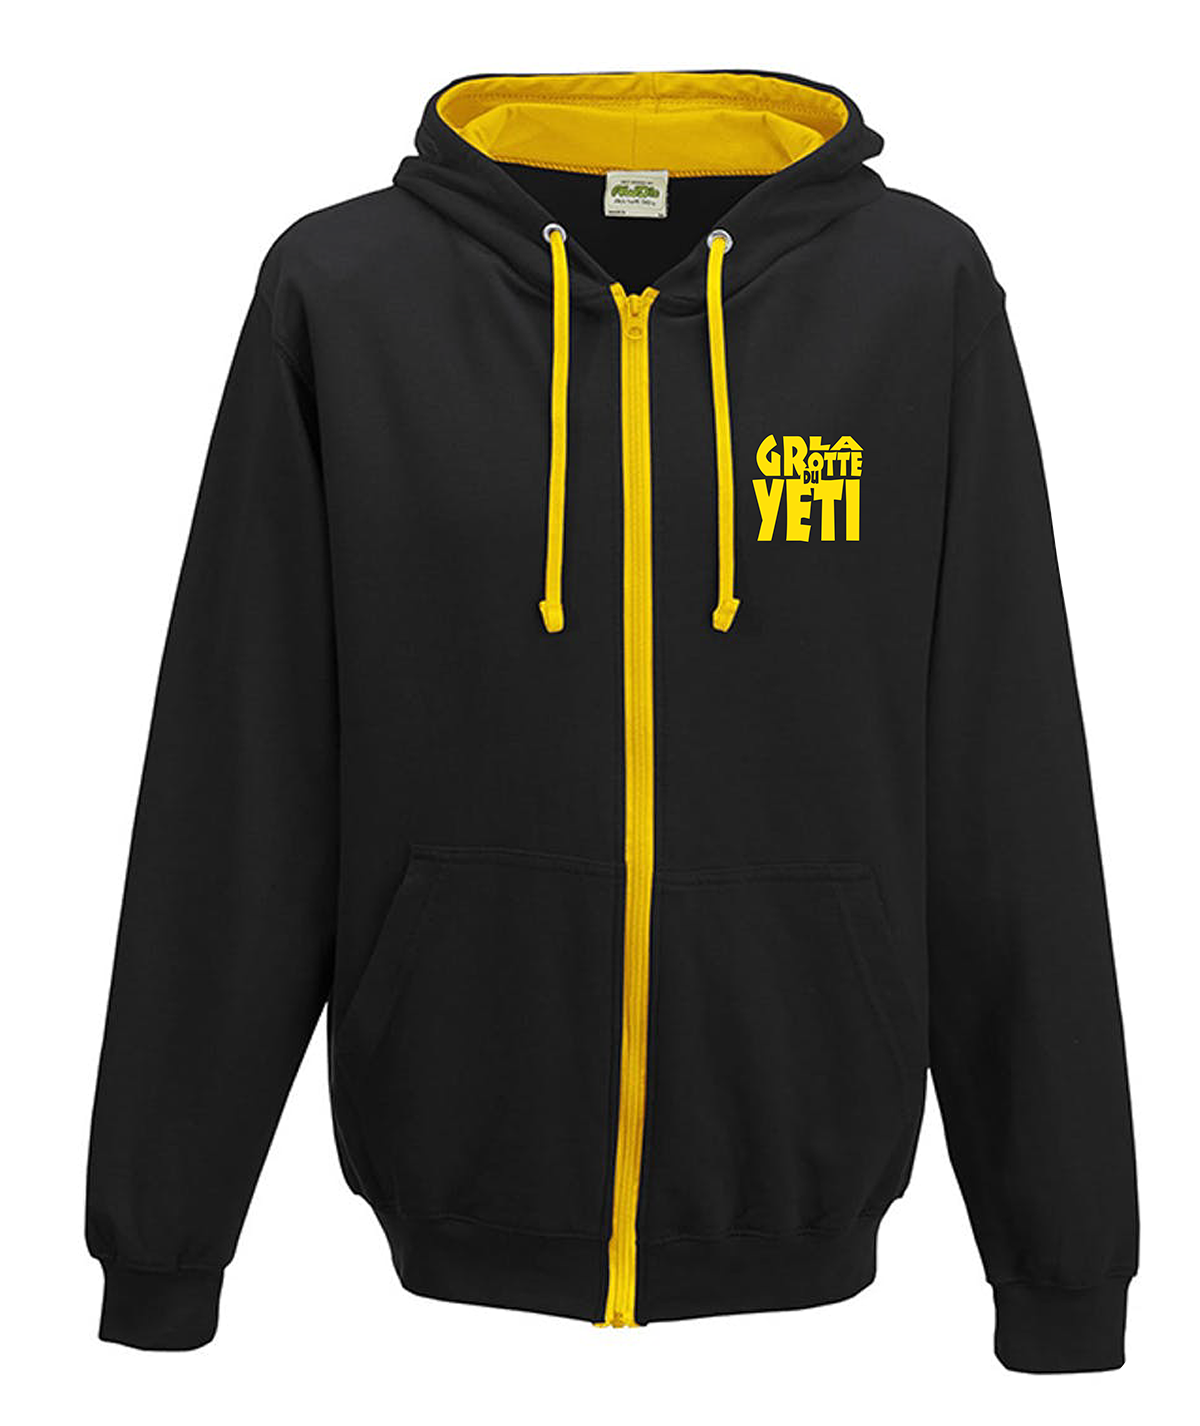 Sweat Noir:jaune